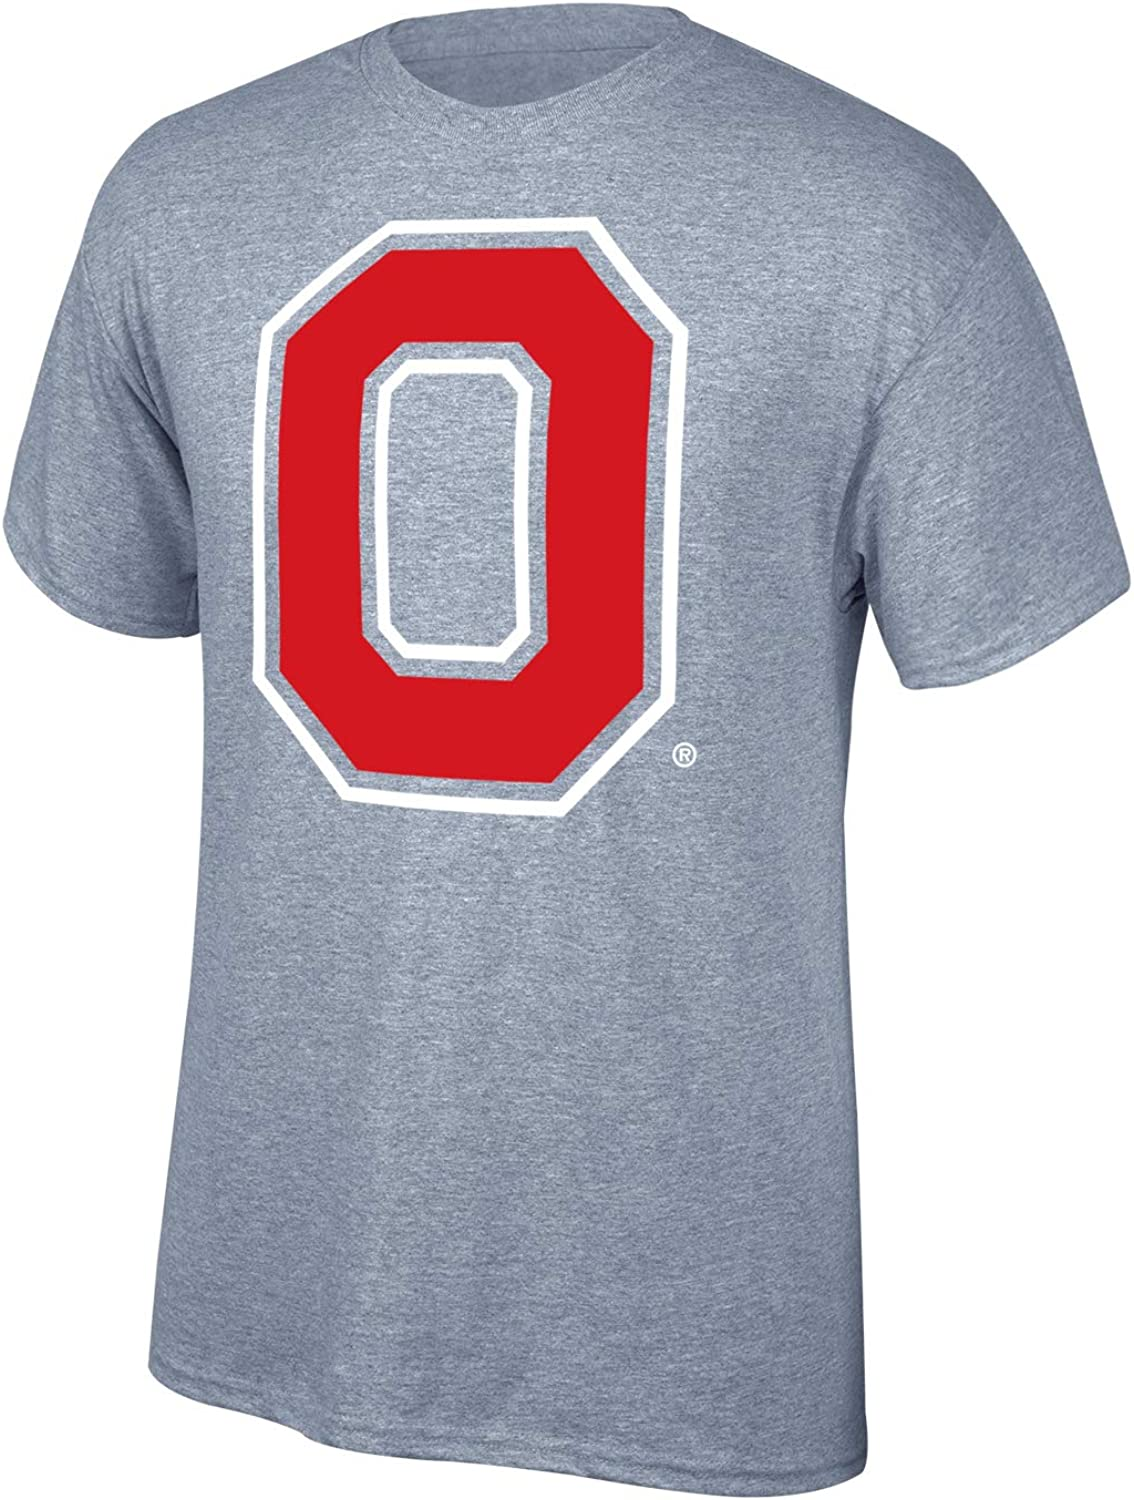 Ohio State The O Gameday Tagless Short Sleeve T-Shirt